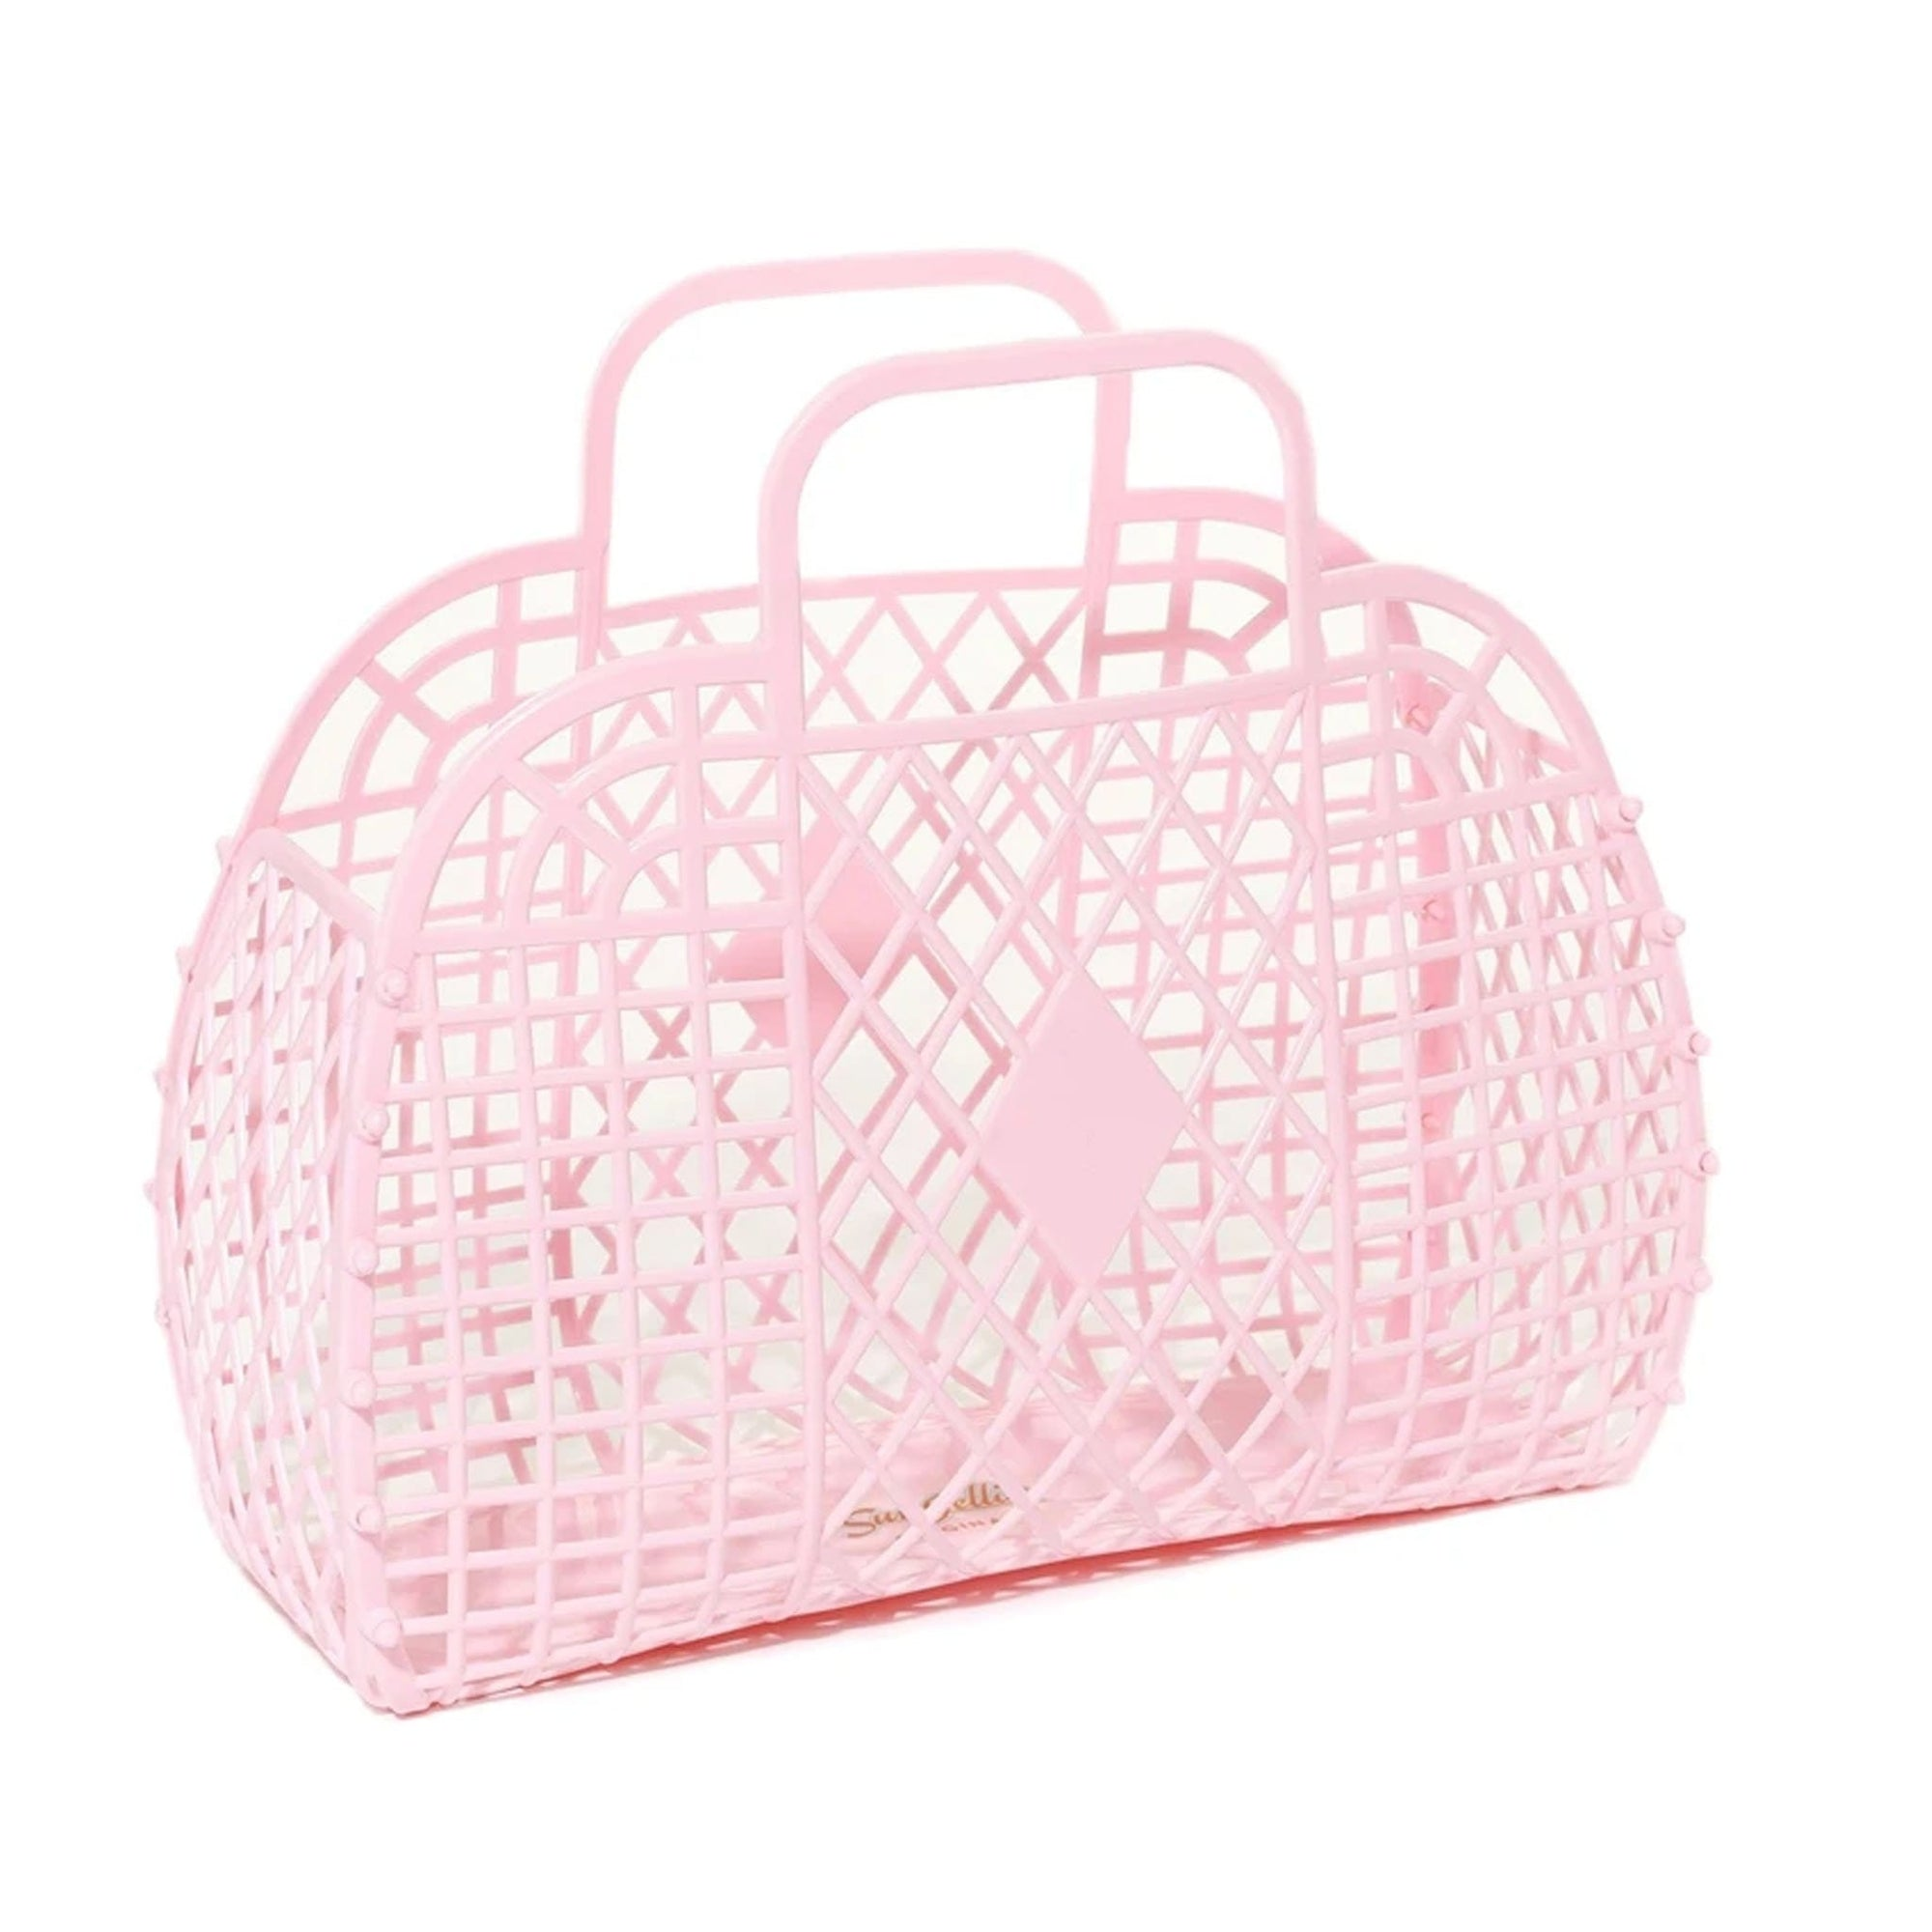 Sun Jellies Retro Basket Pink - Small